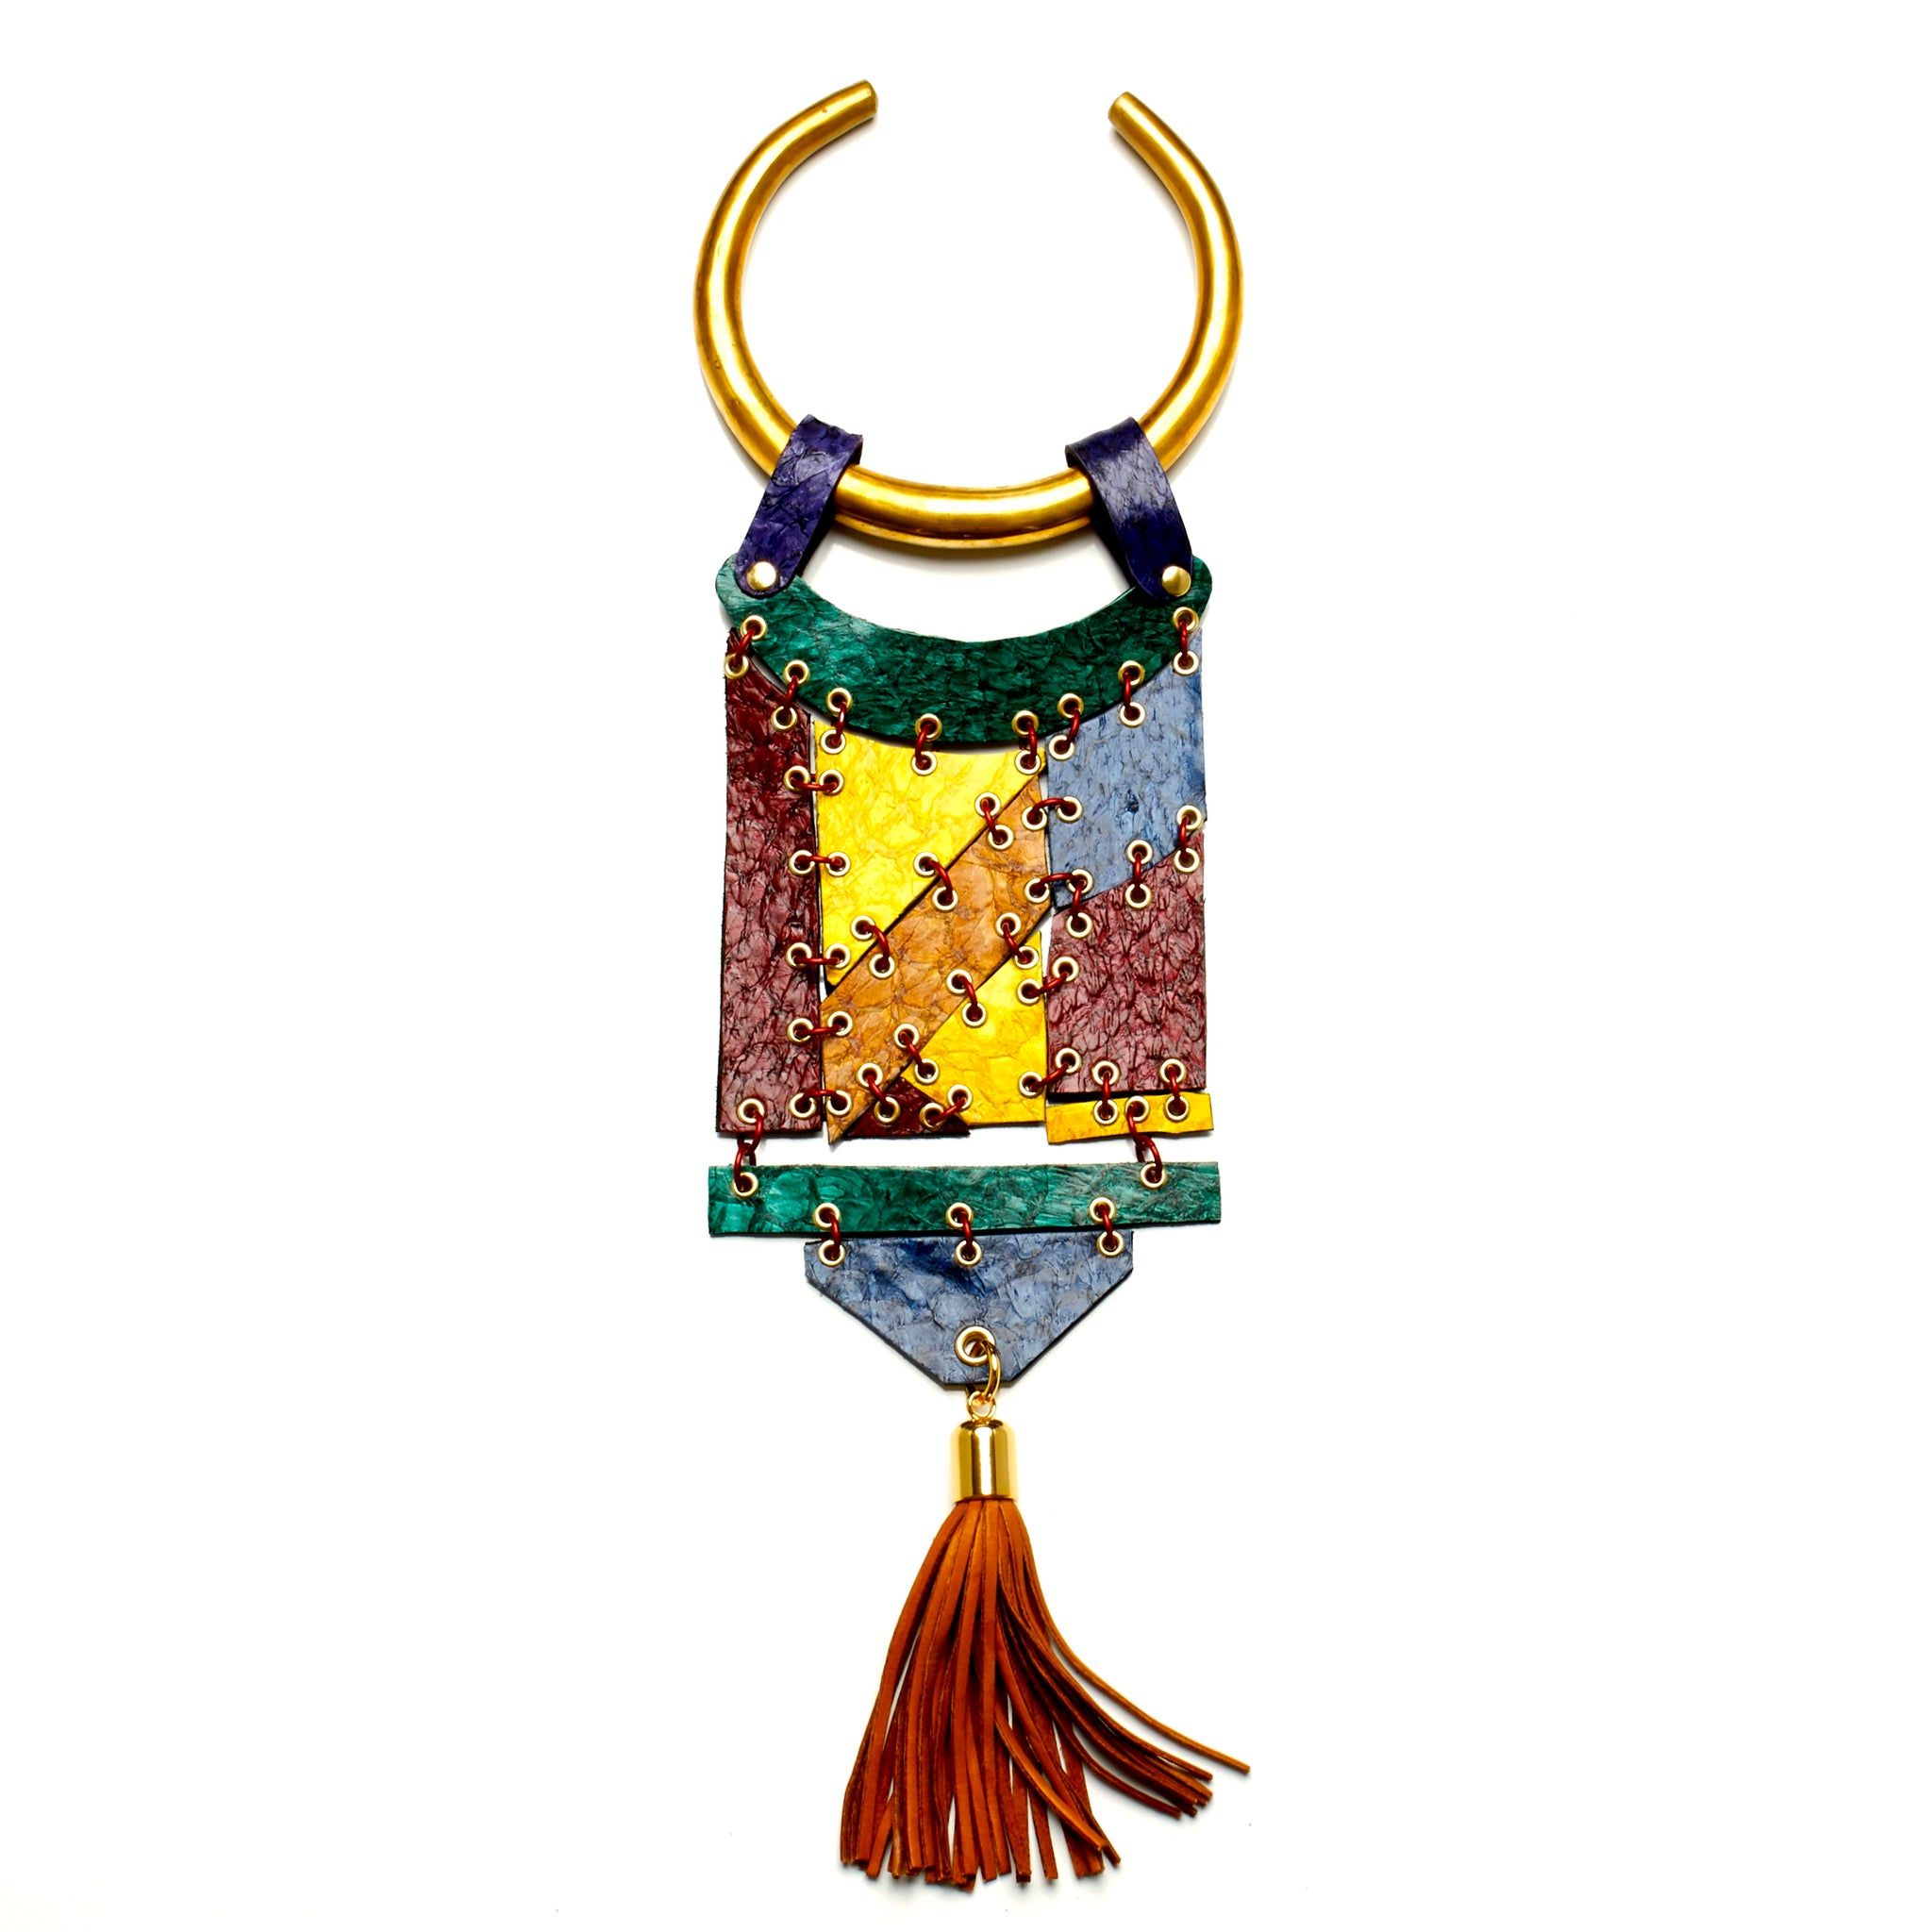 THICK ROUND SOLID BRASS TORQUE NECKLACE WITH HINGED PANELS MADE OF FISH LEATHER WITH DEERSKIN TASSEL BY NYET JEWELRY.